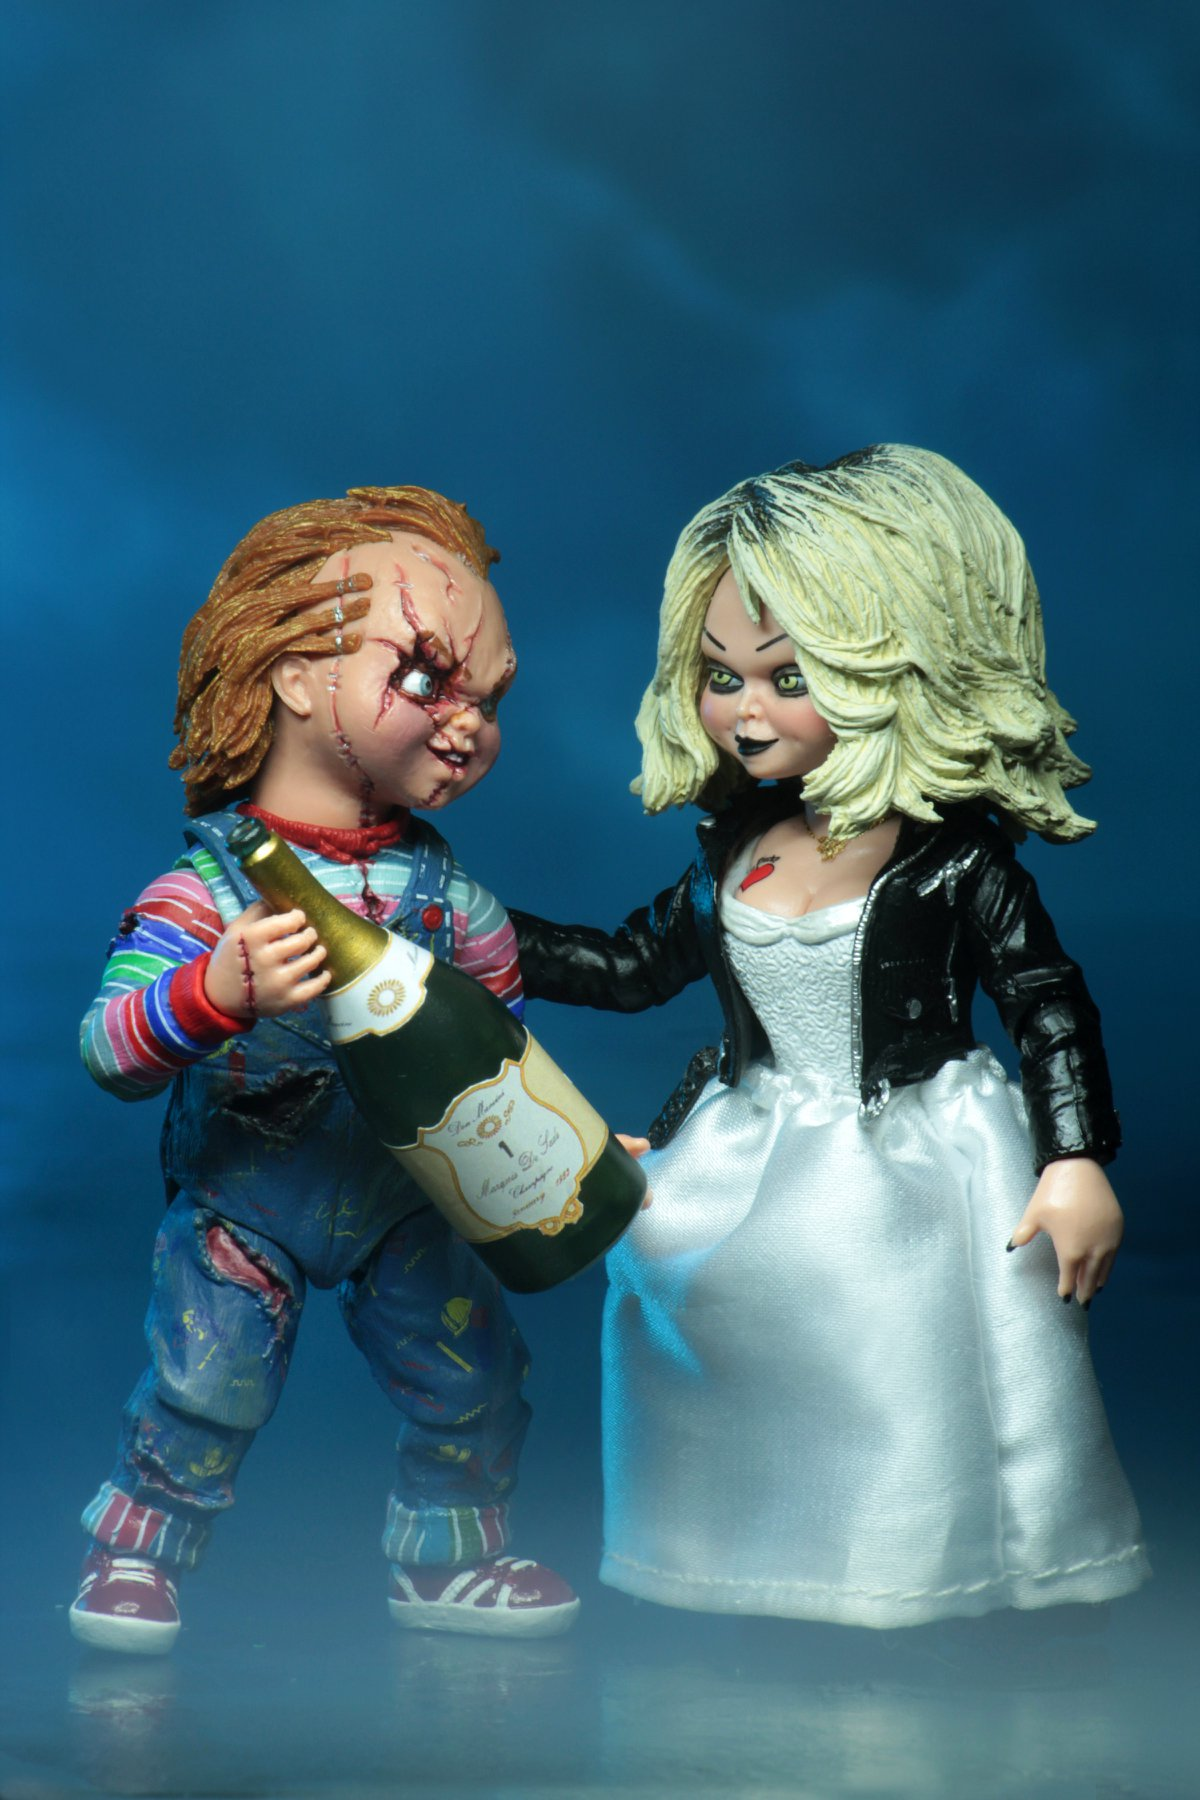 Star Wars Girl Wallpaper Neca Bride Of Chucky Two Pack Gallery Action Figure Fury